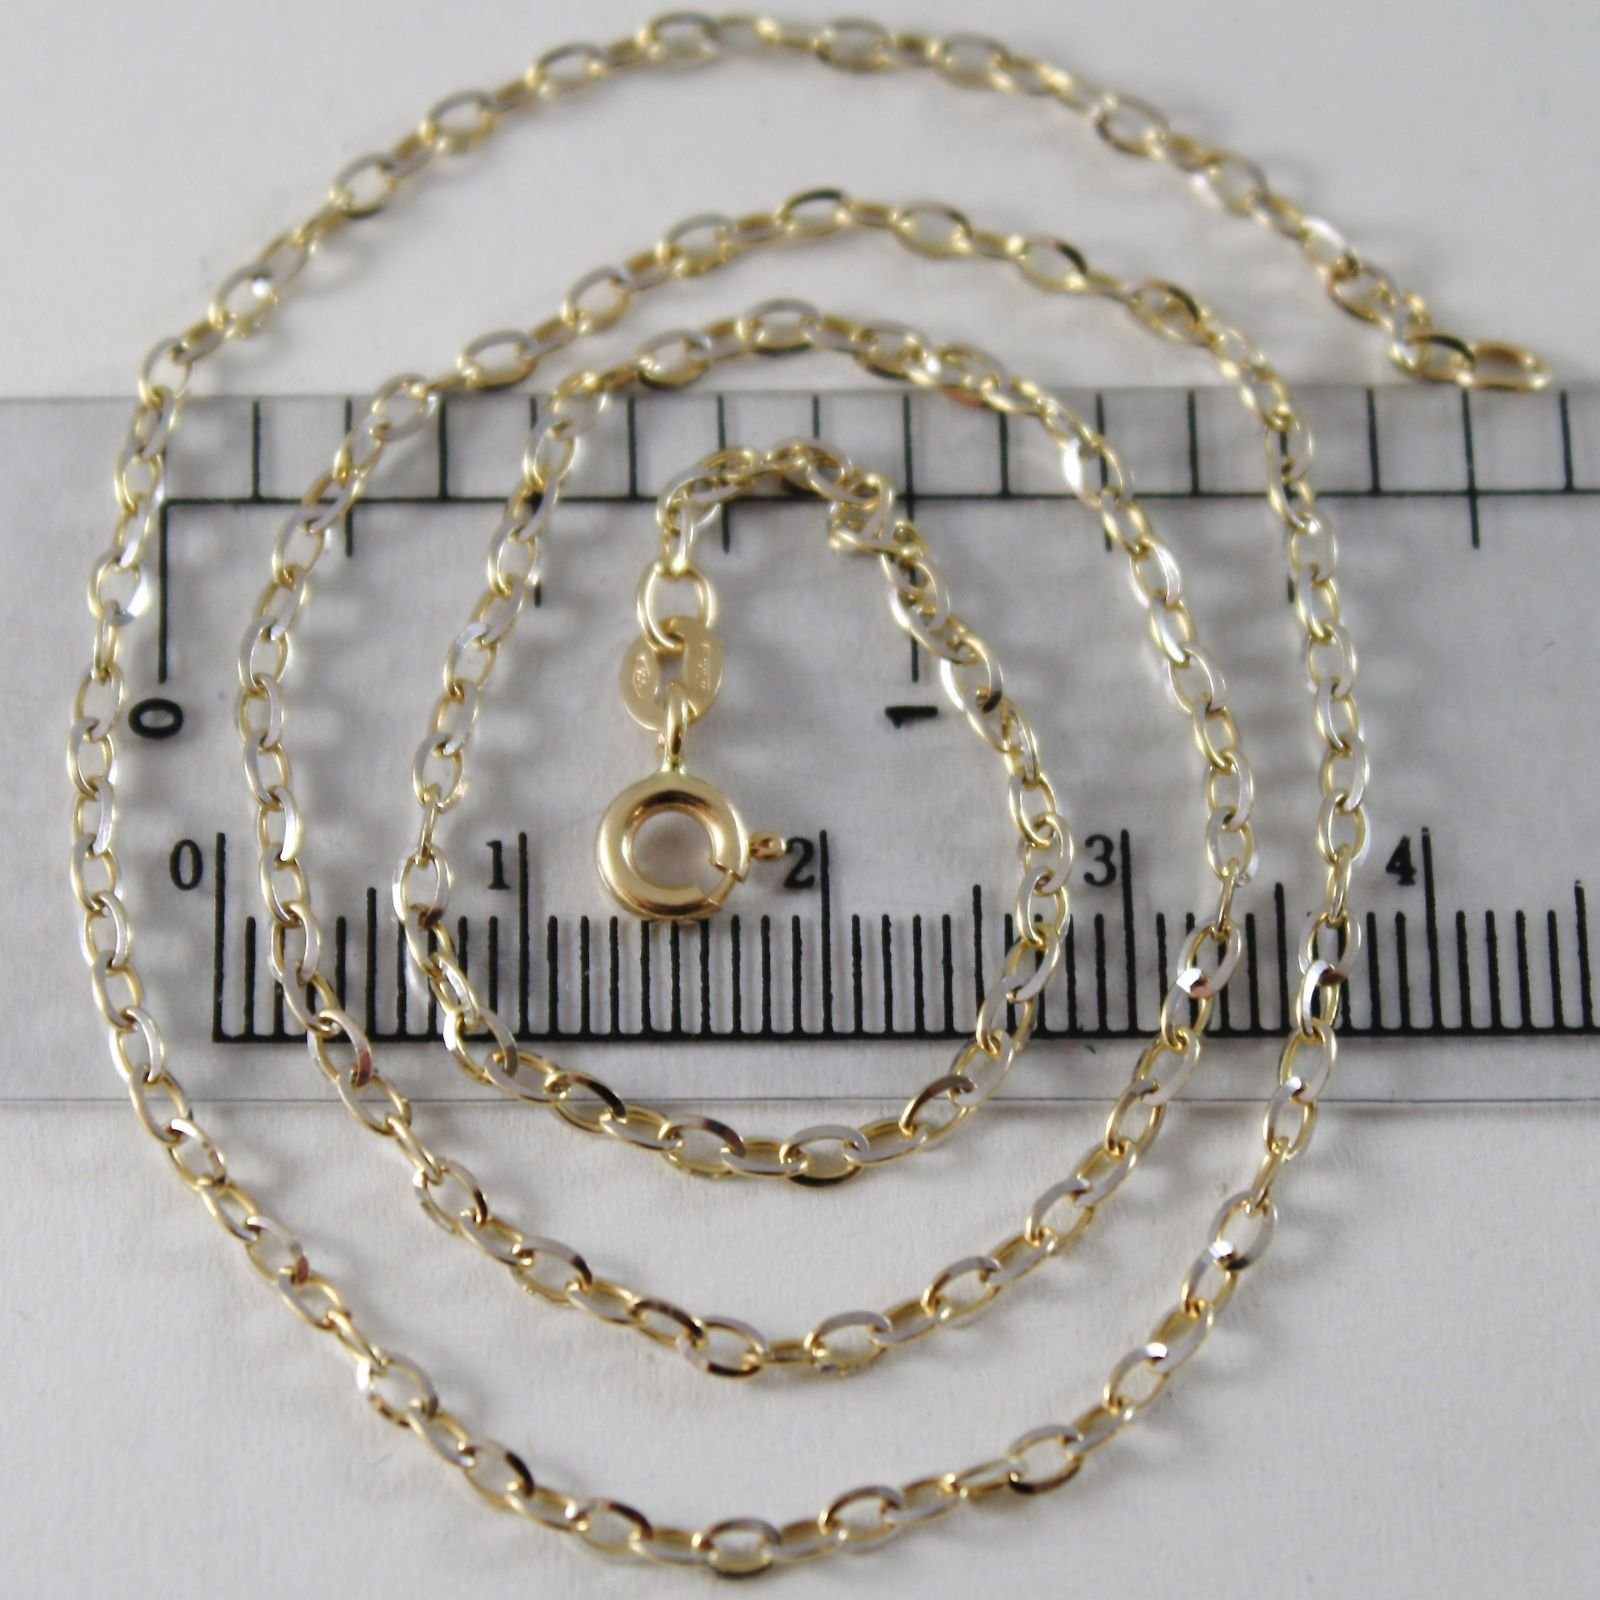 GOLD CHAIN WHITE AND YELLOW 750 18K, MINI ROLO' OVAL 2 MM, LONG 40 0,5 45 CM